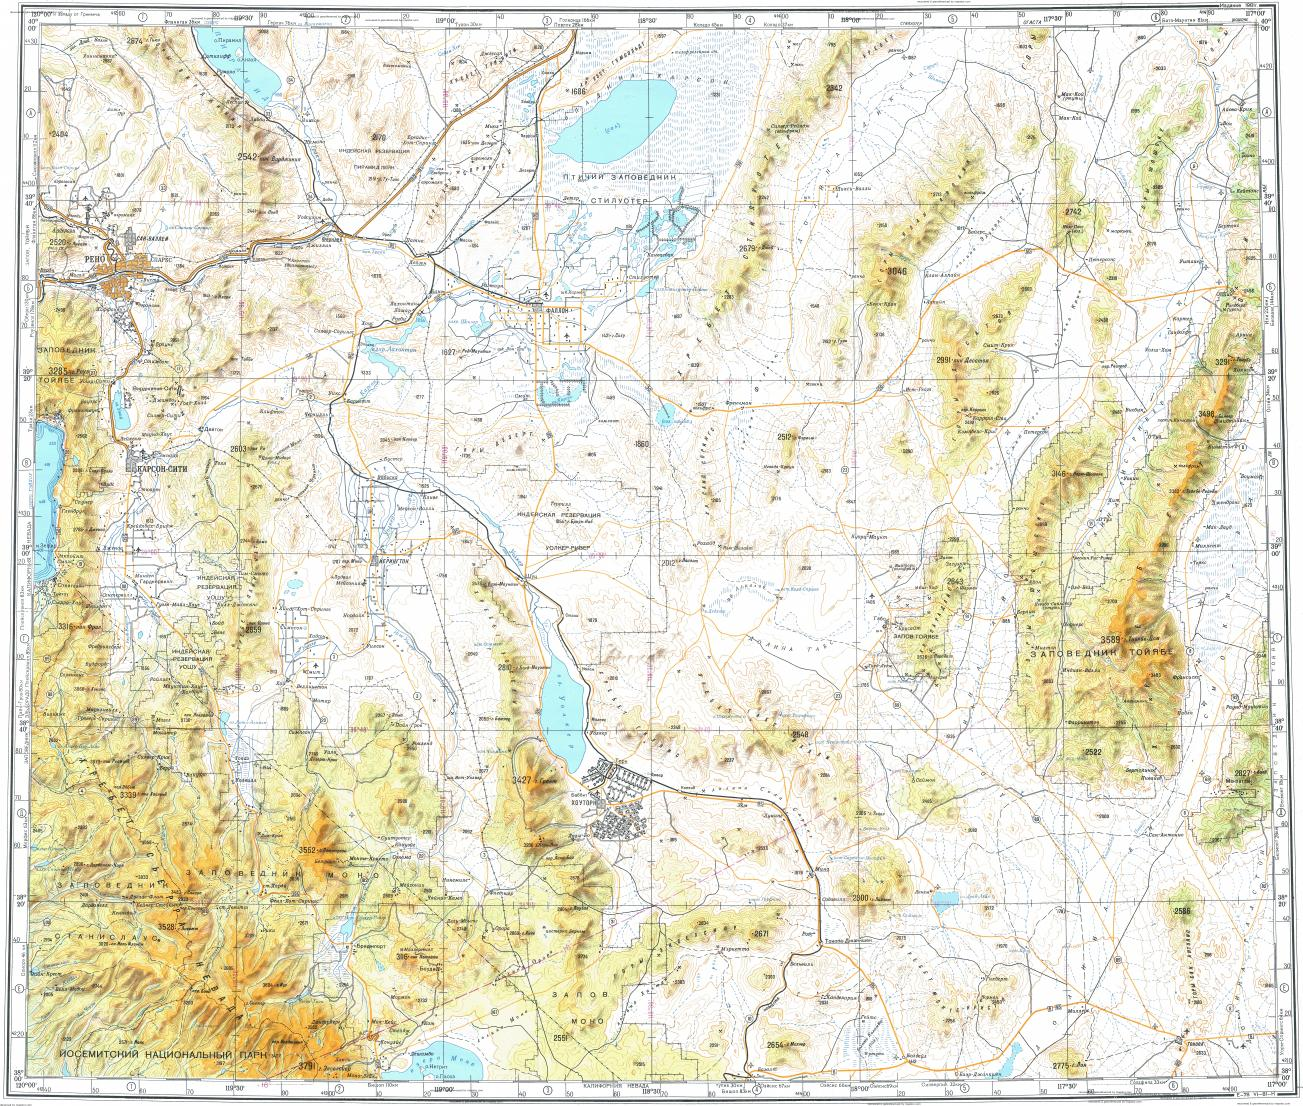 Download Topographic Map In Area Of Reno Sparks Carson City - Map of reno and lake tahoe